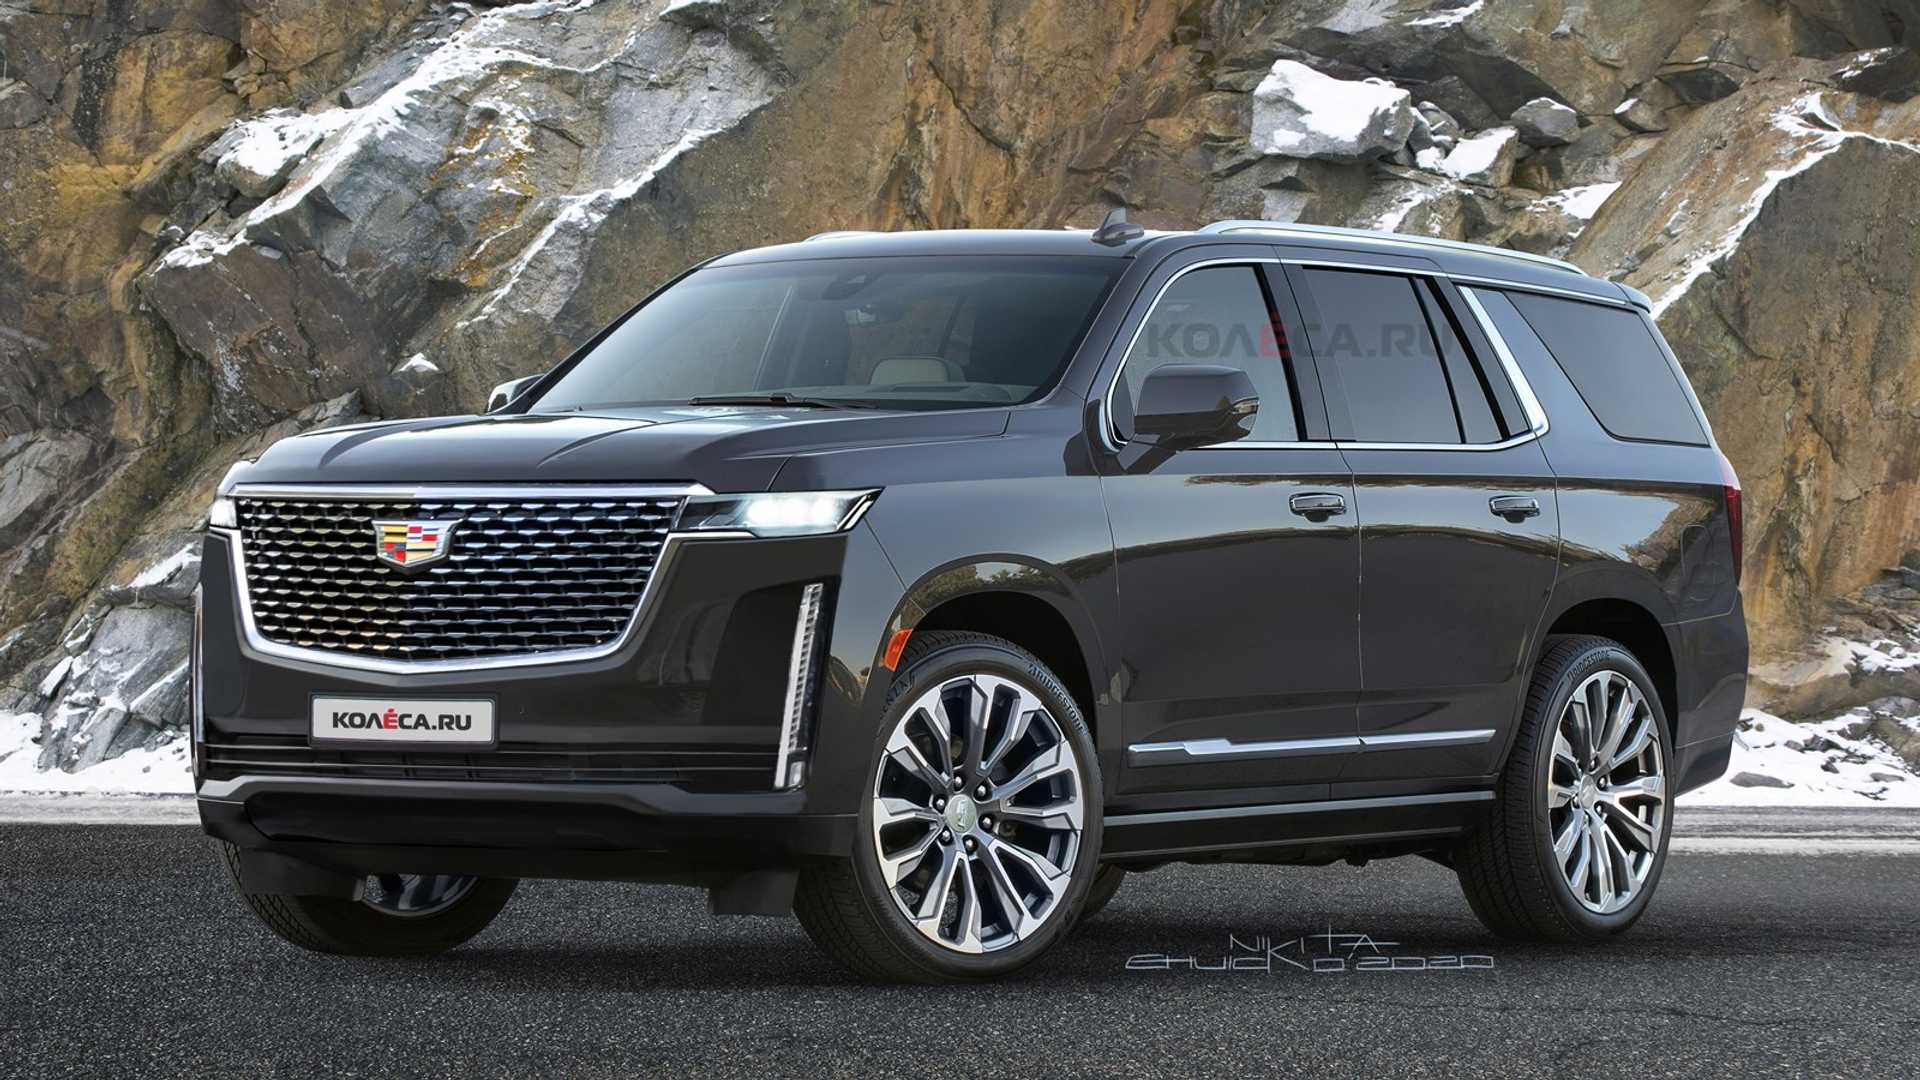 Cadillac Escalade 2021 appears in its expected form